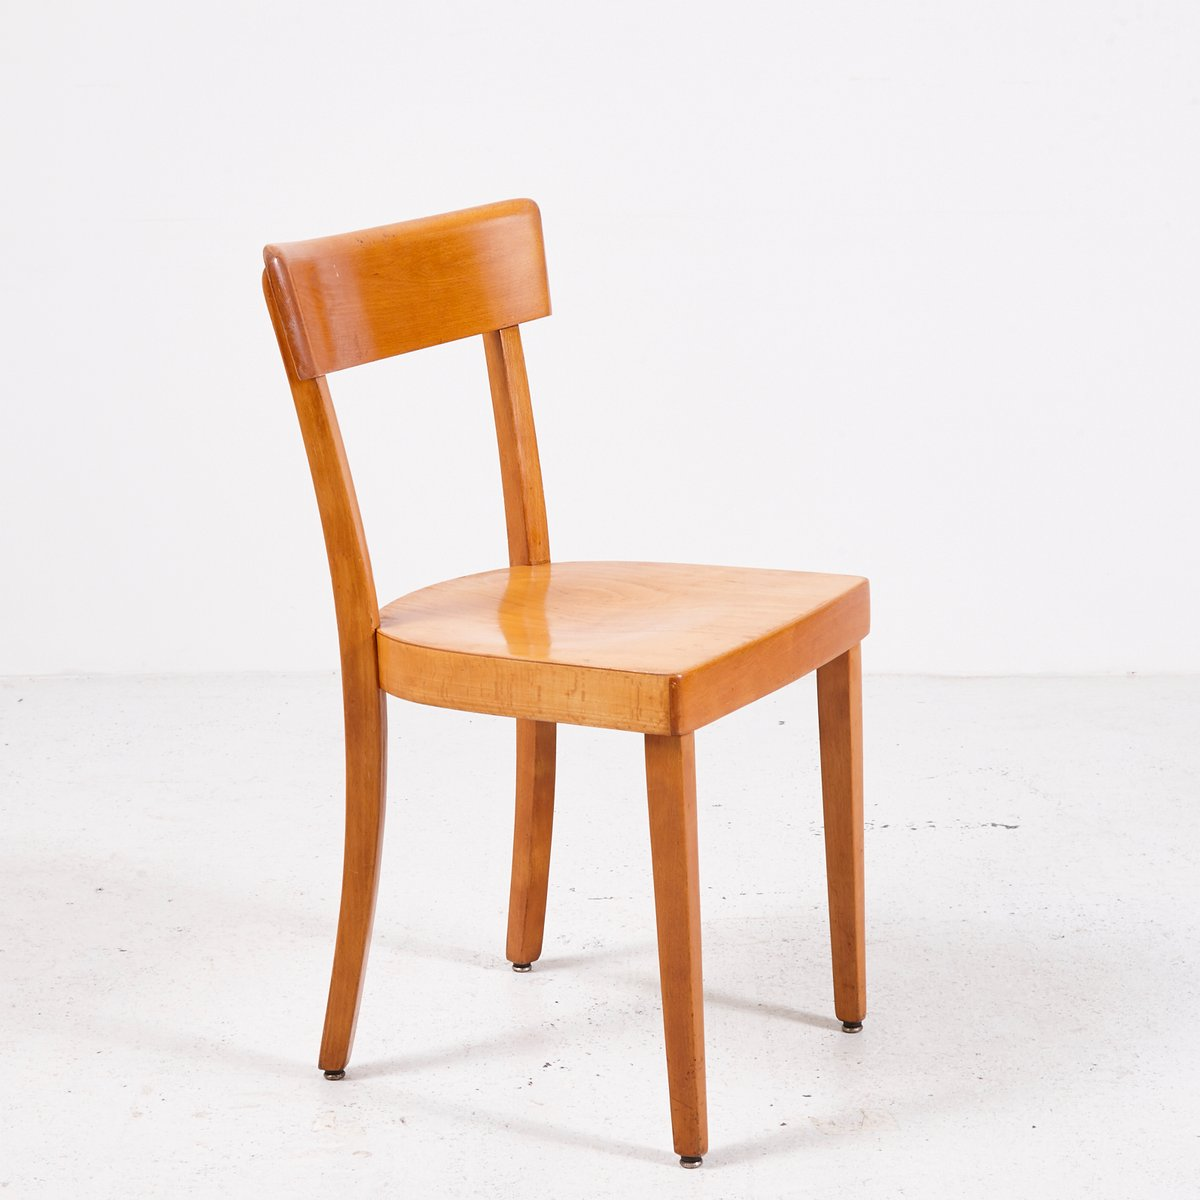 wooden chair. Wooden Chair D